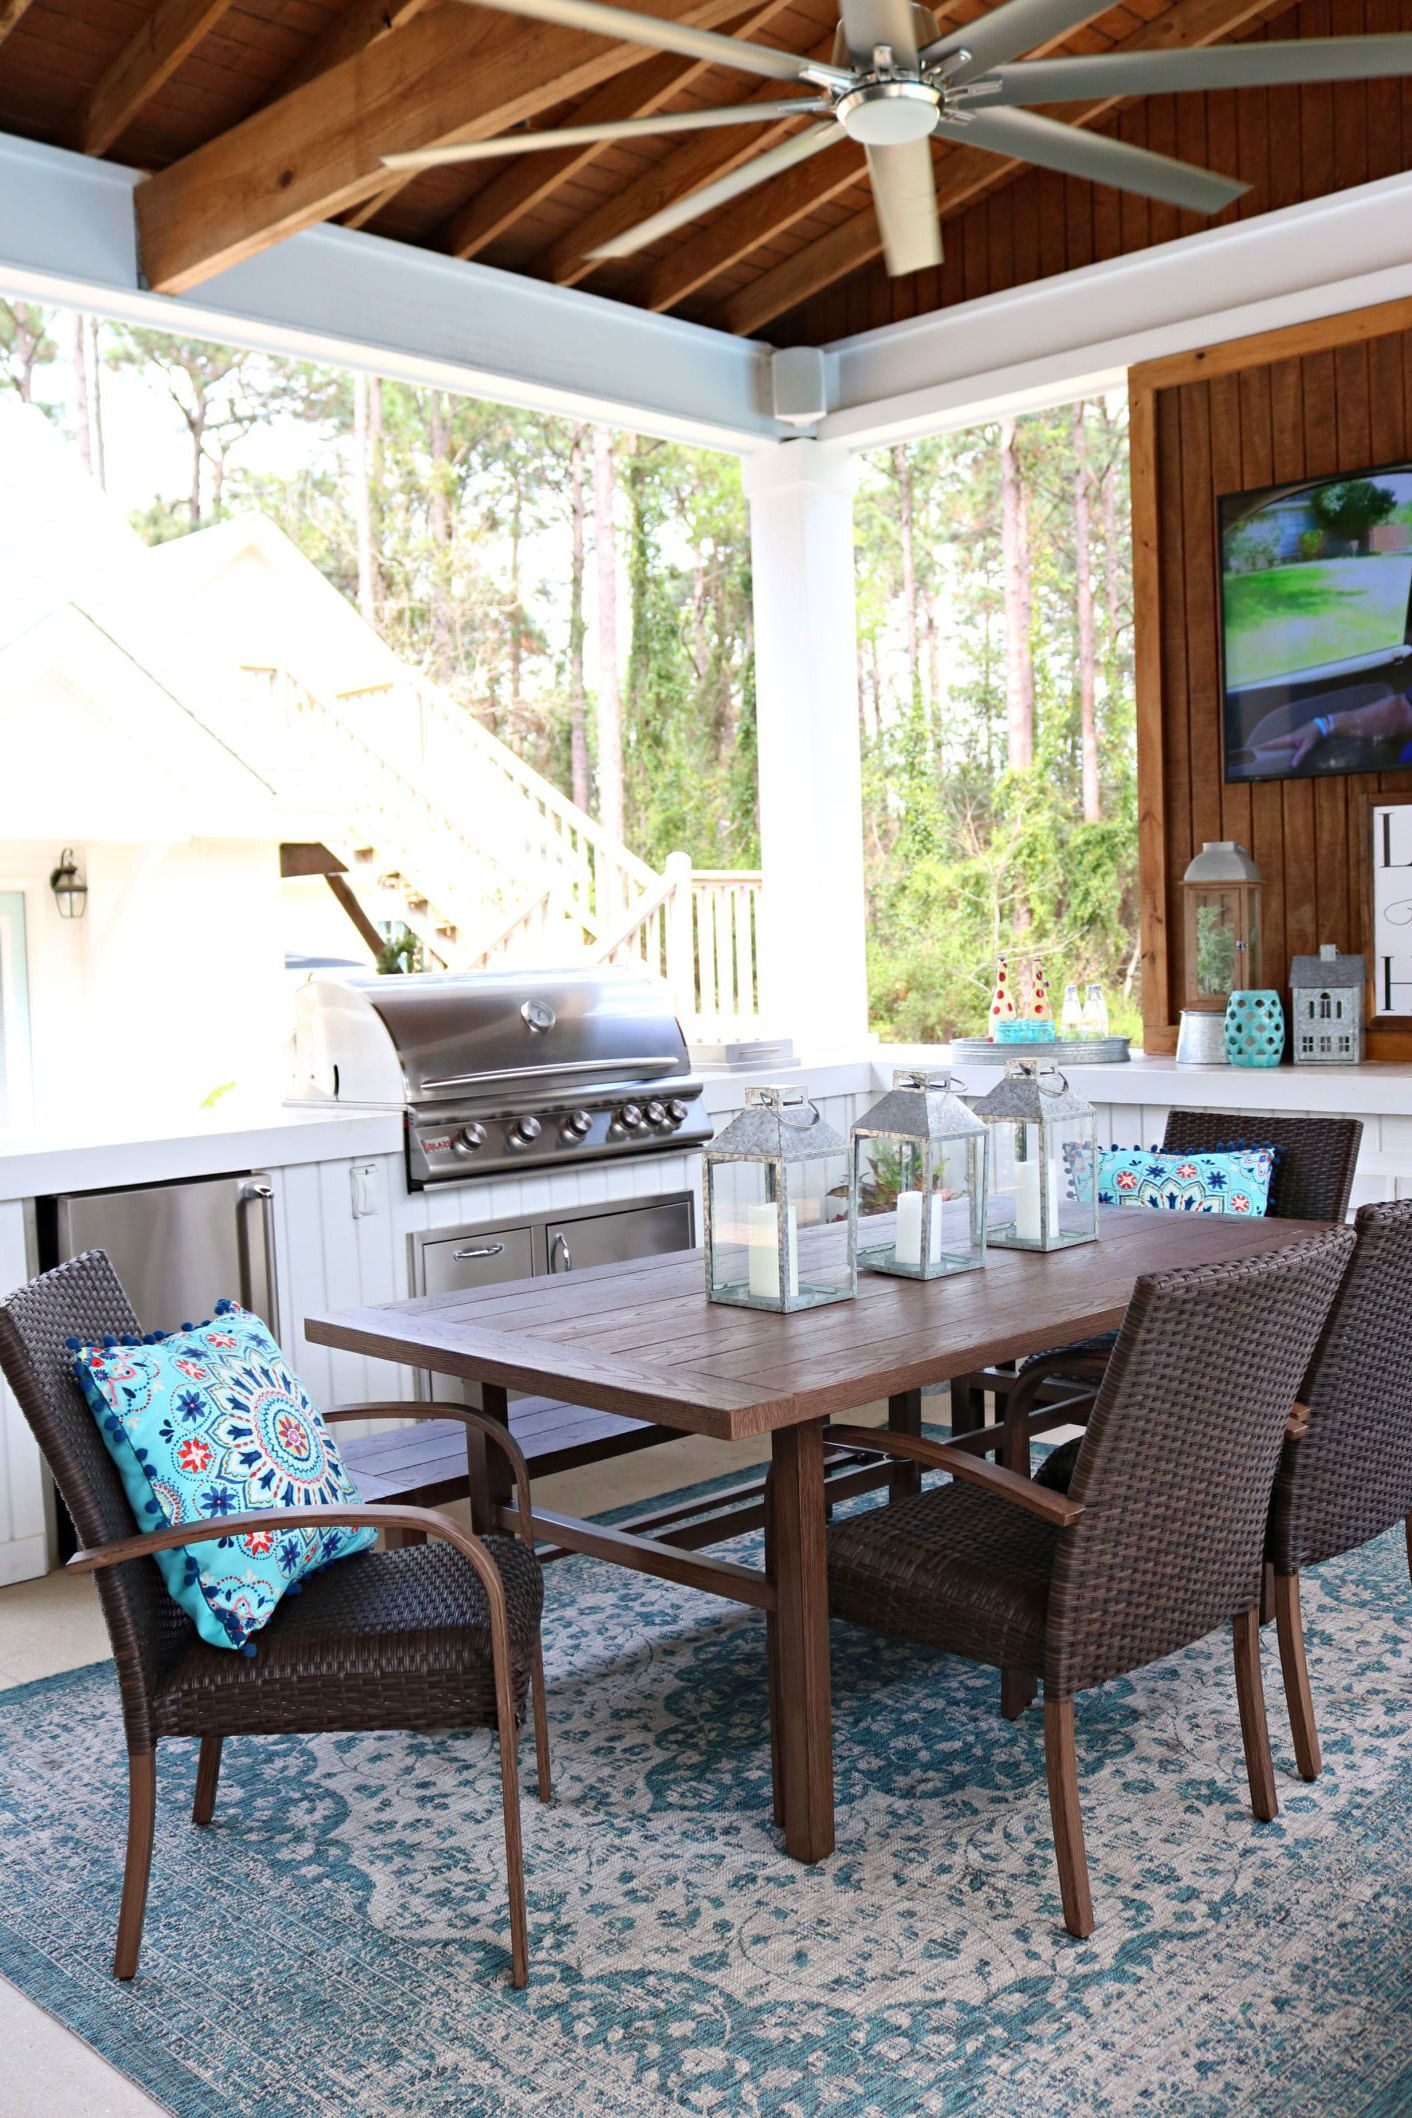 Better homes and gardens palmer lake patio dining set